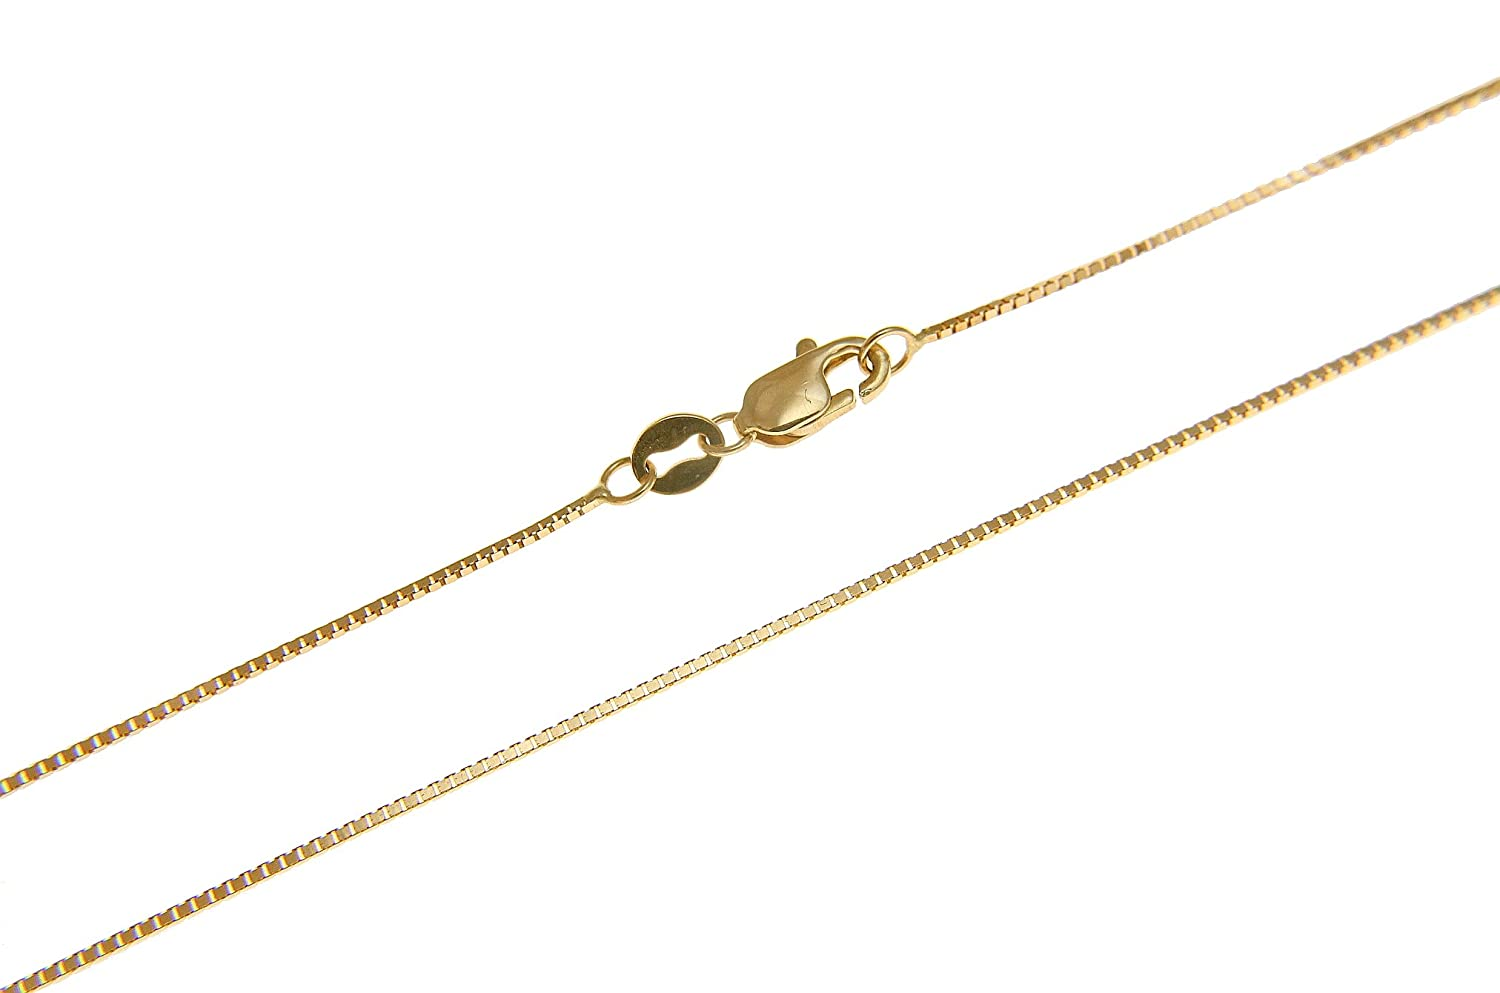 14K solid yellow gold 0.65mm box chain necklace lobster clasp 16-24